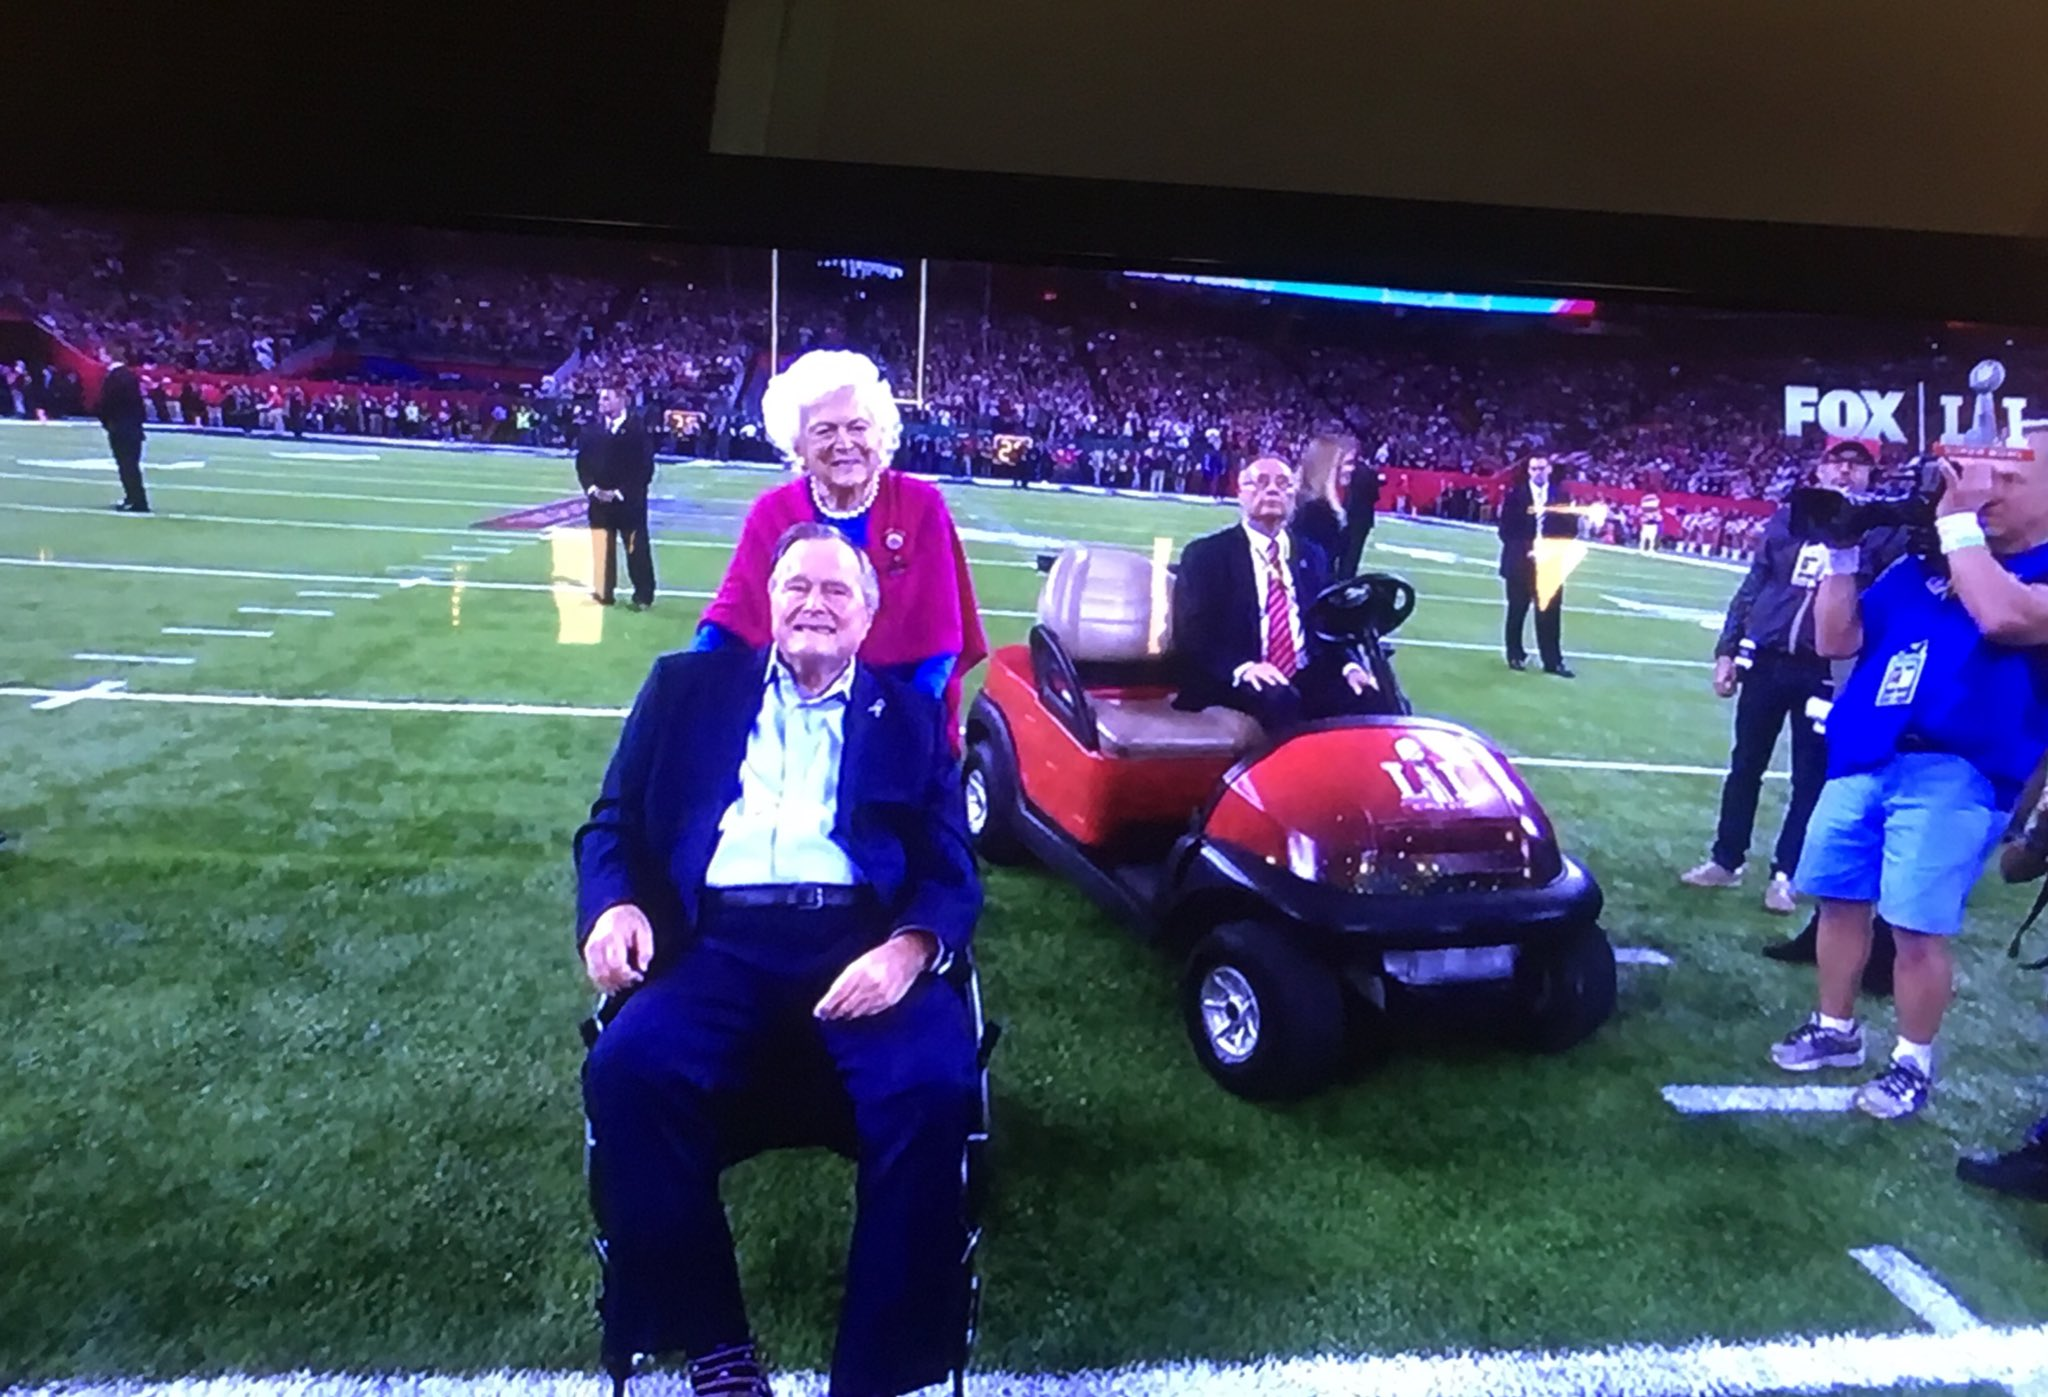 """Thumbnail for Former President George H.W. Bush was """"fired up"""" for the Super Bowl coin toss"""